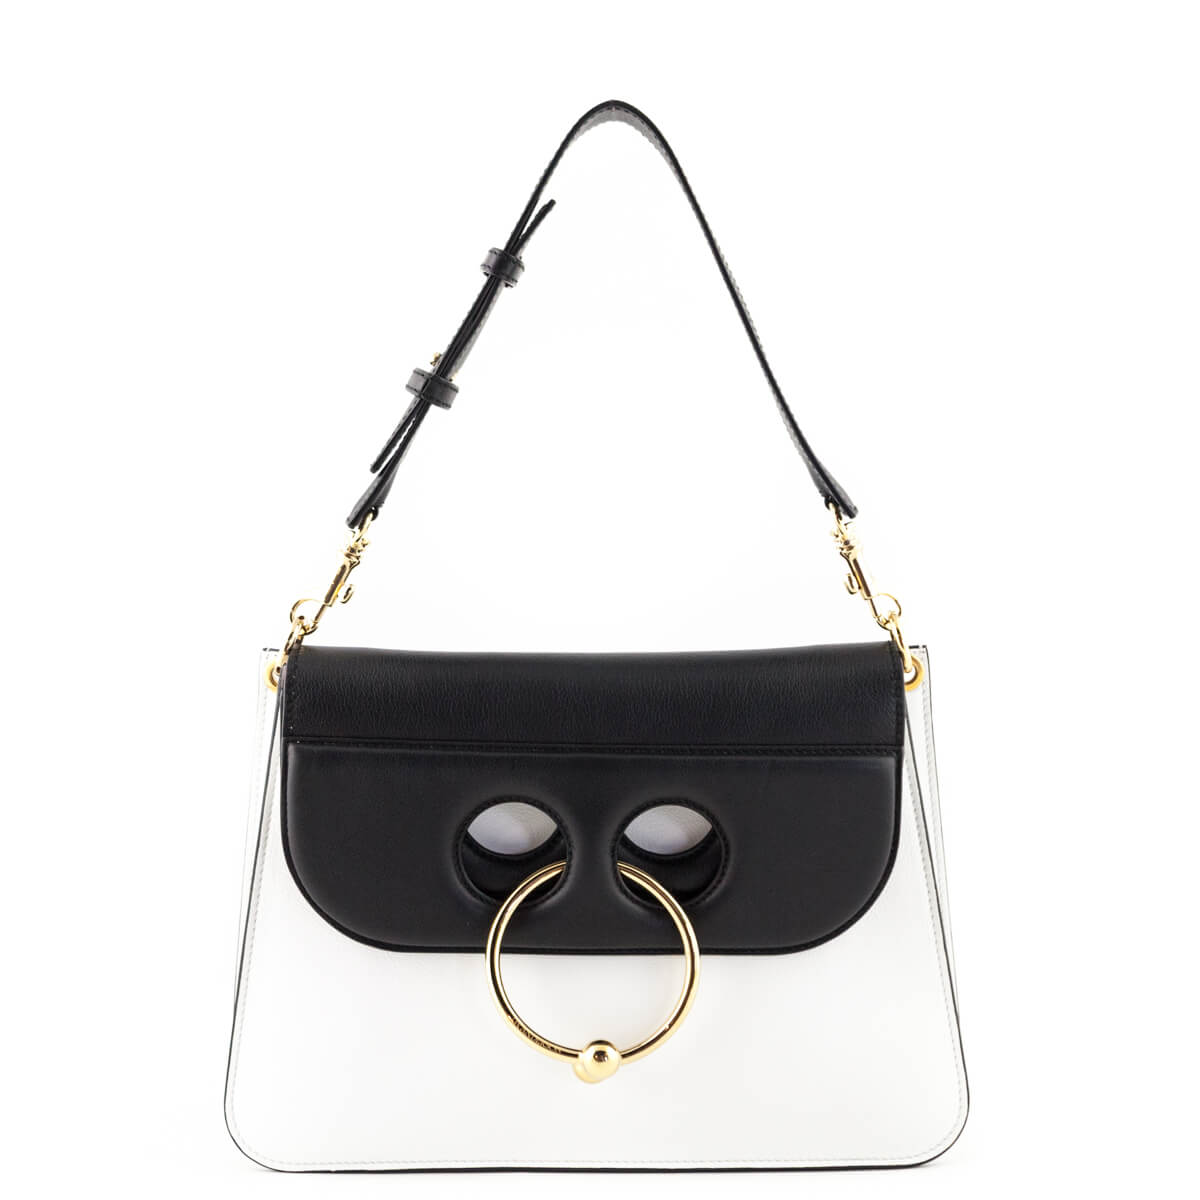 c00223c77acf JW Anderson Black   White Calfskin Medium Pierce bag - LOVE that BAG -  Preowned Authentic ...